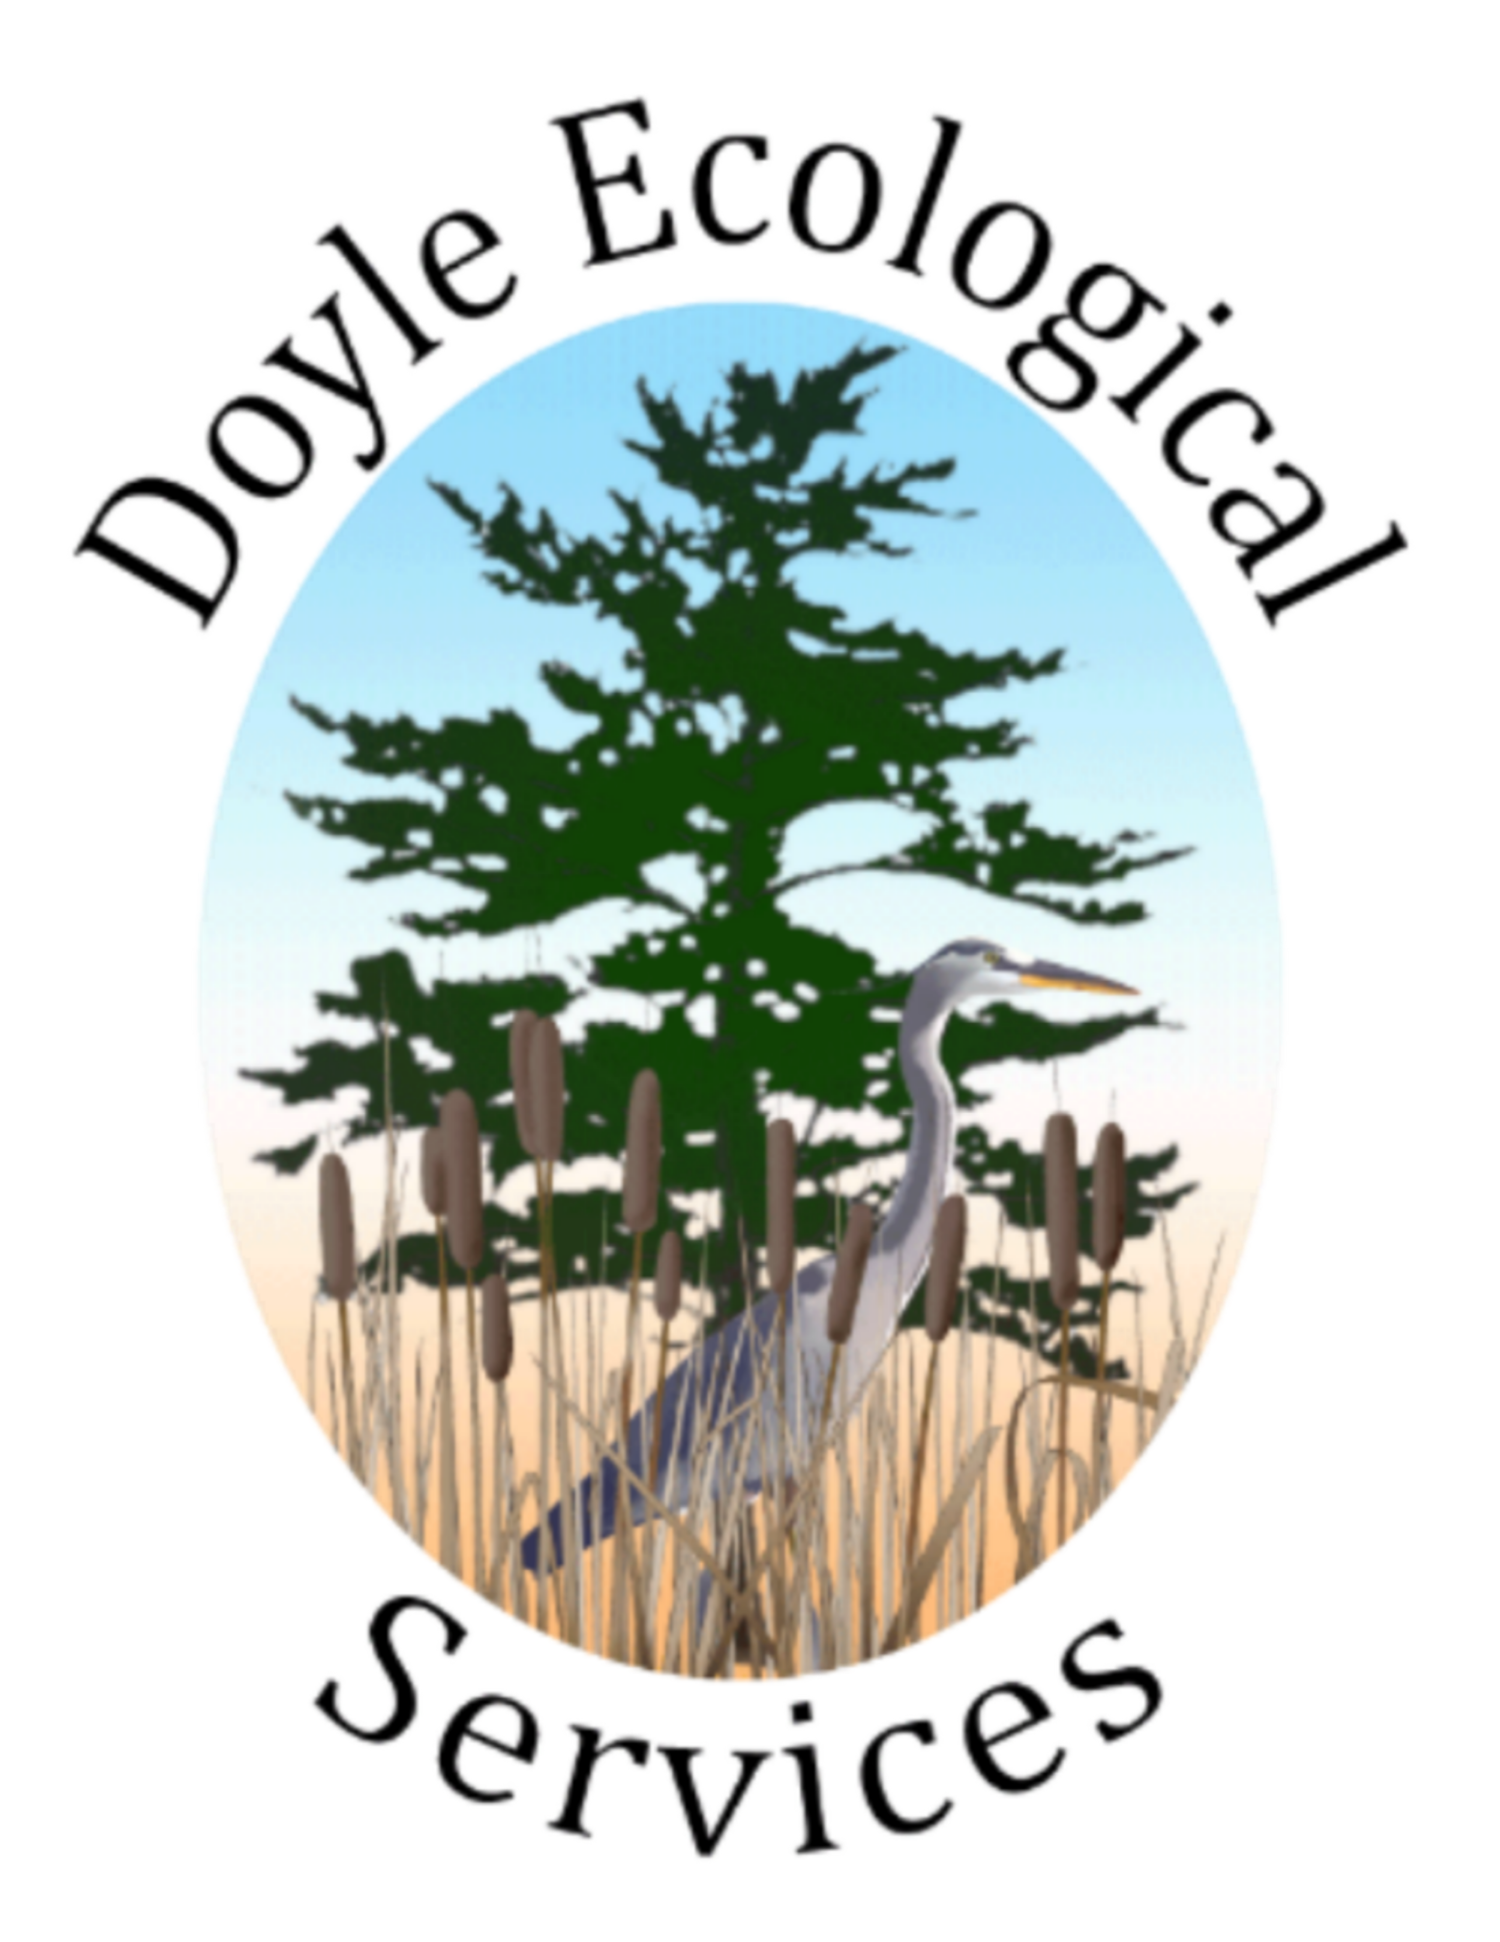 Doyle Ecological Services